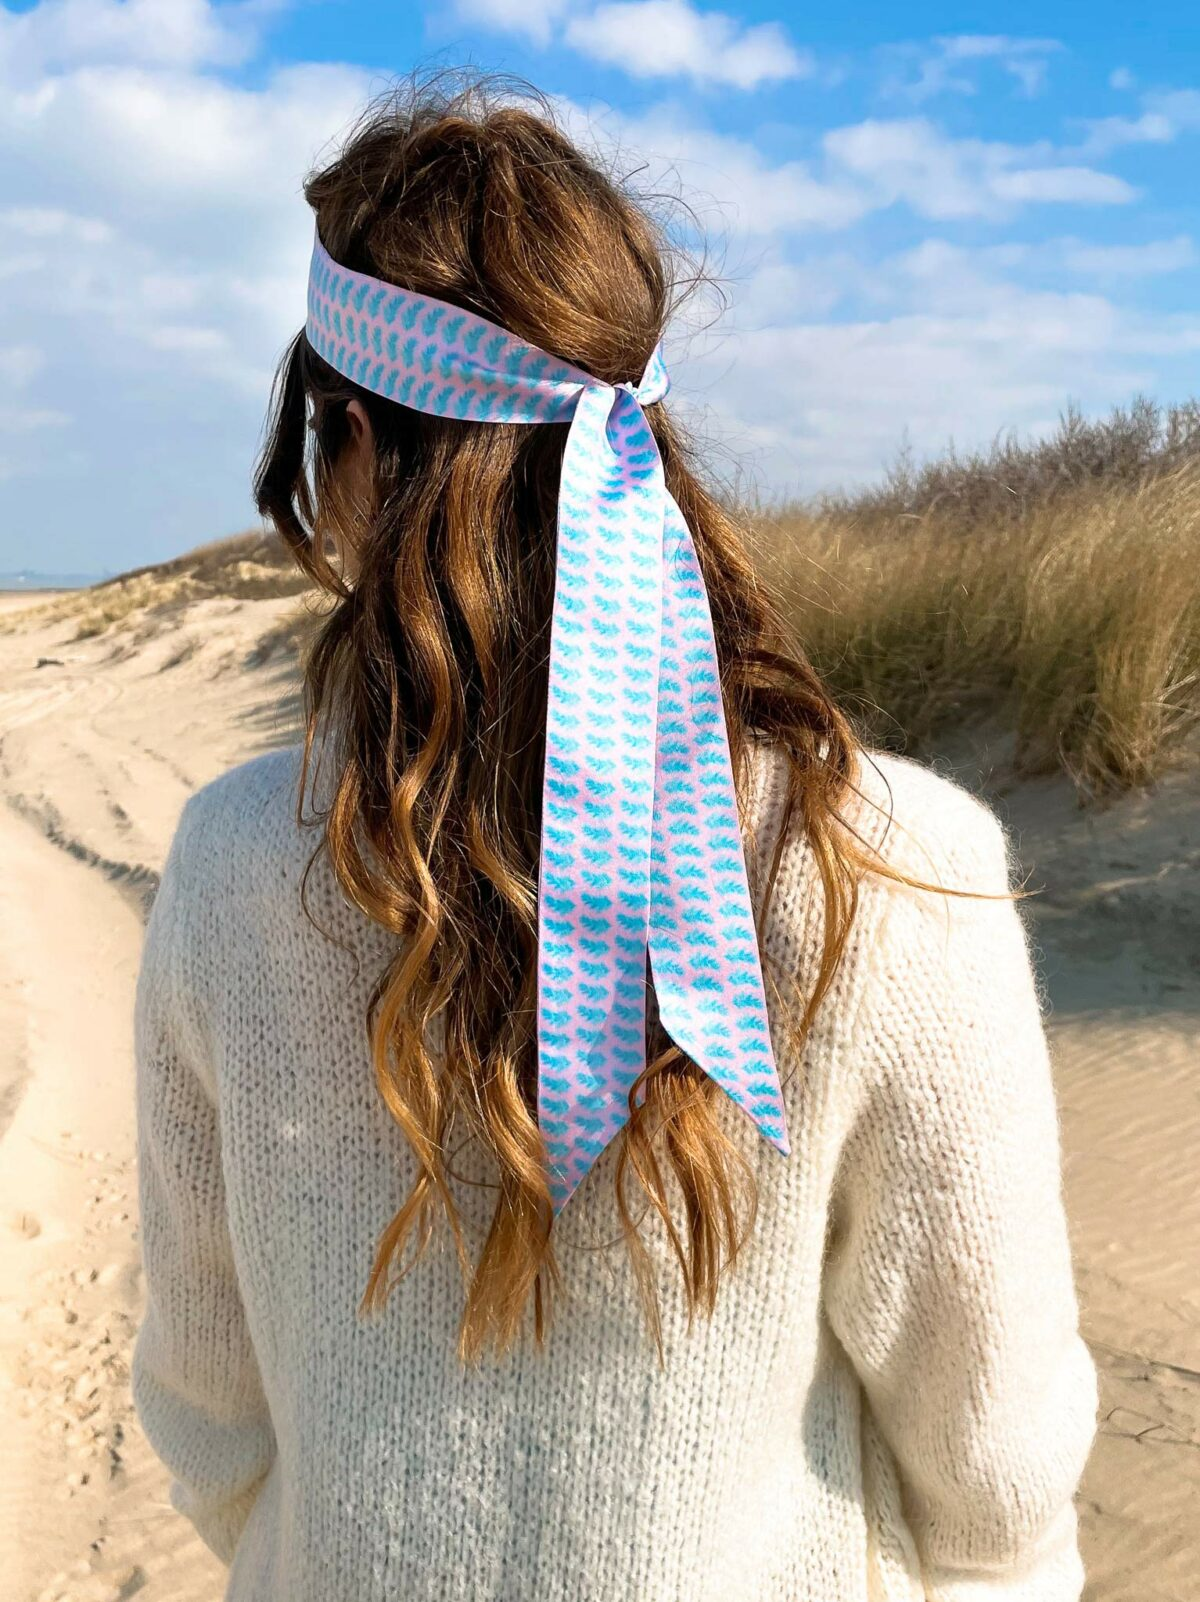 woman from behind with a blue ribbon in her hair